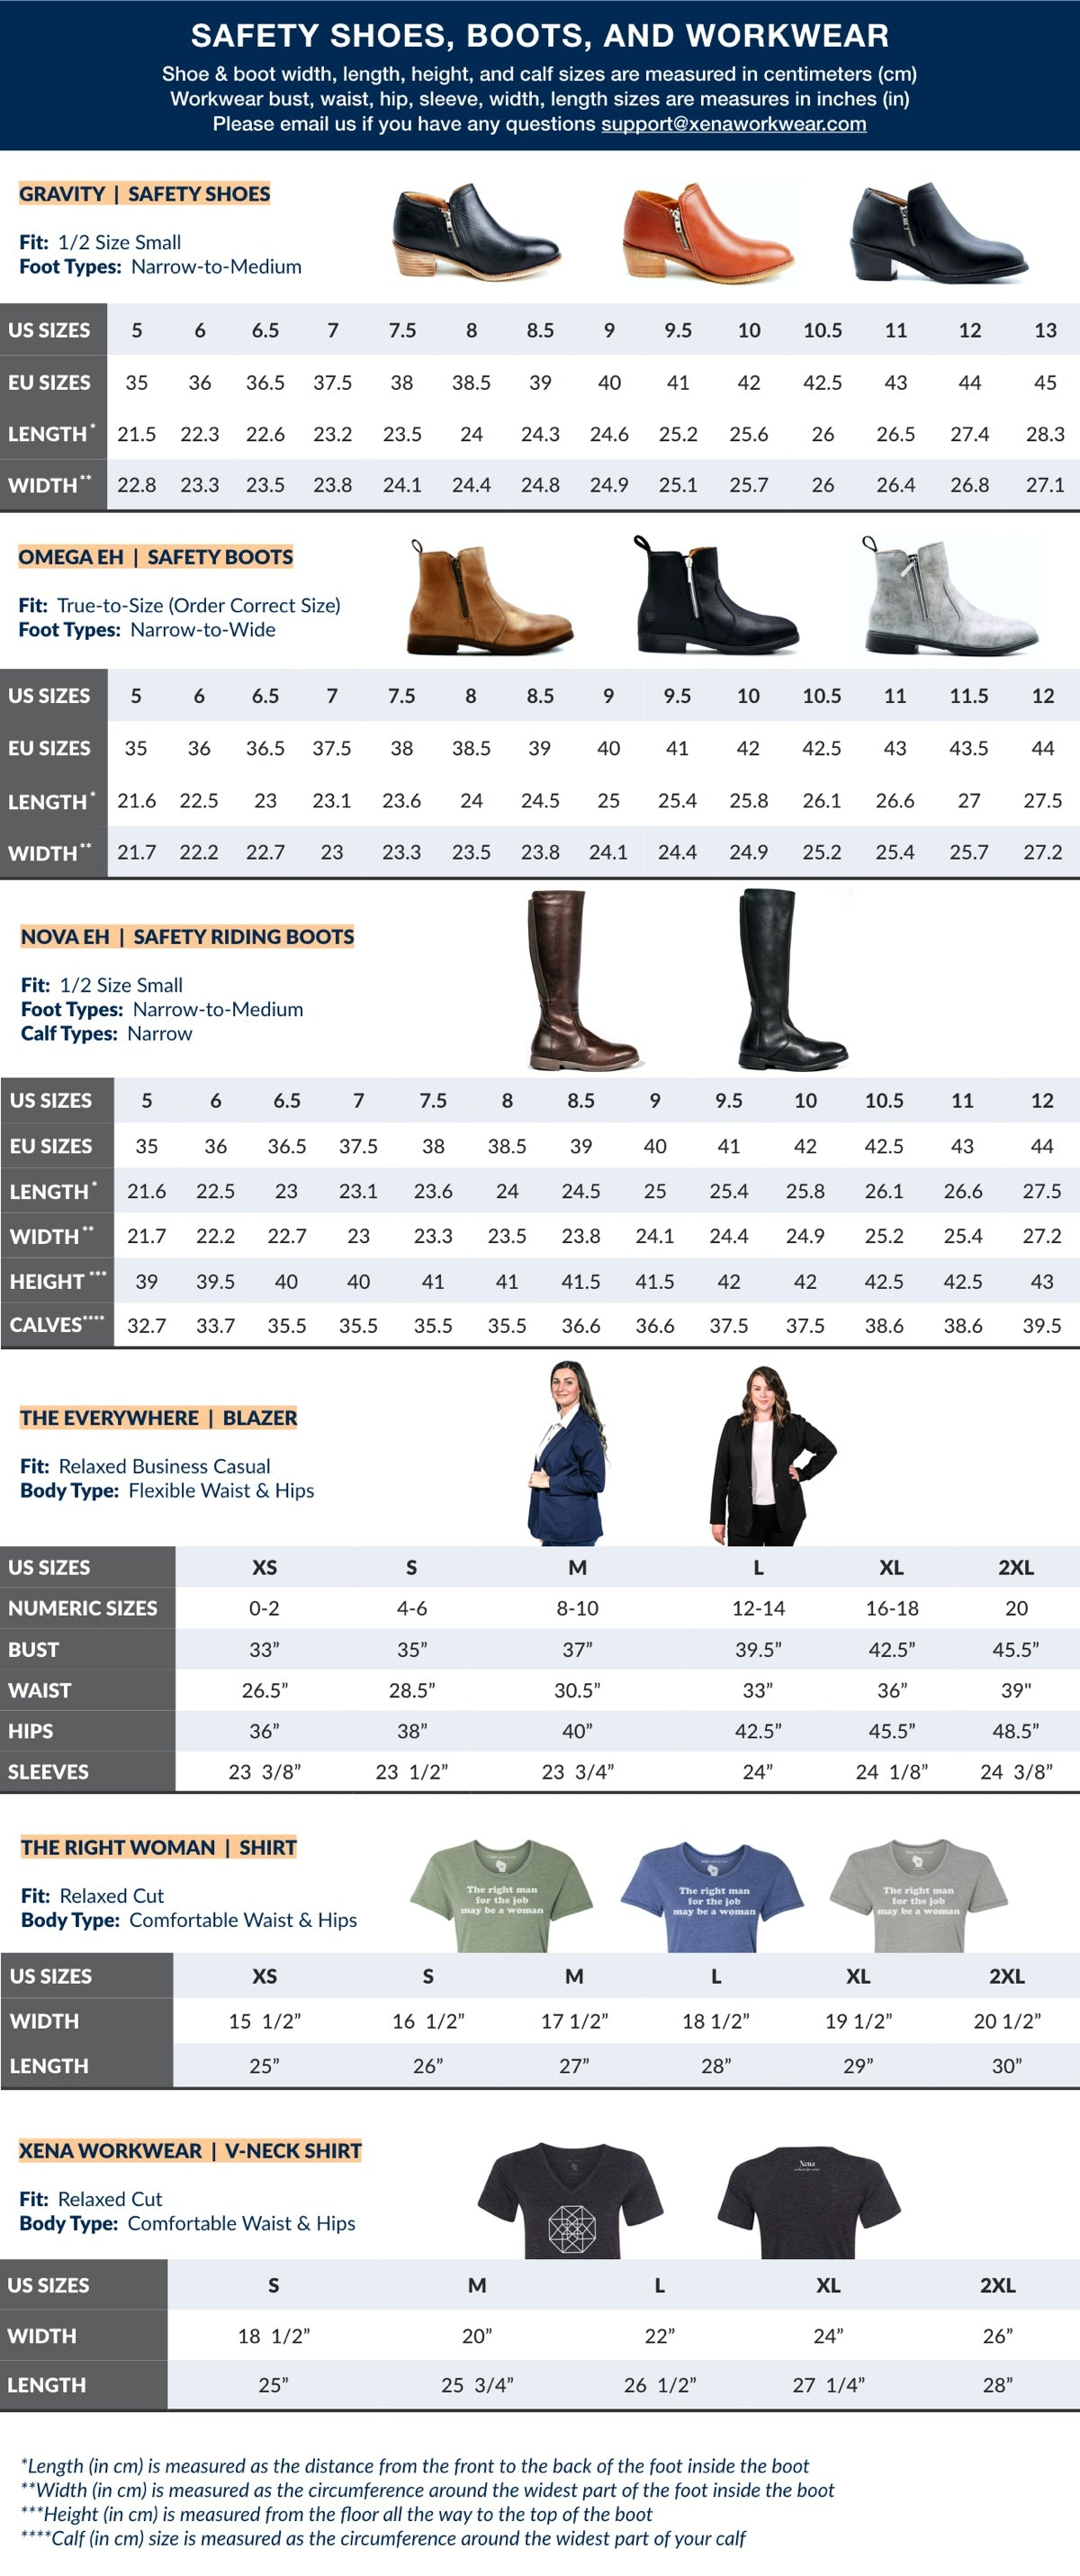 Size Guide for our Women's Steel-Toe Safety Shoes, Booties, Boots, and Shirts | Xena Workwear